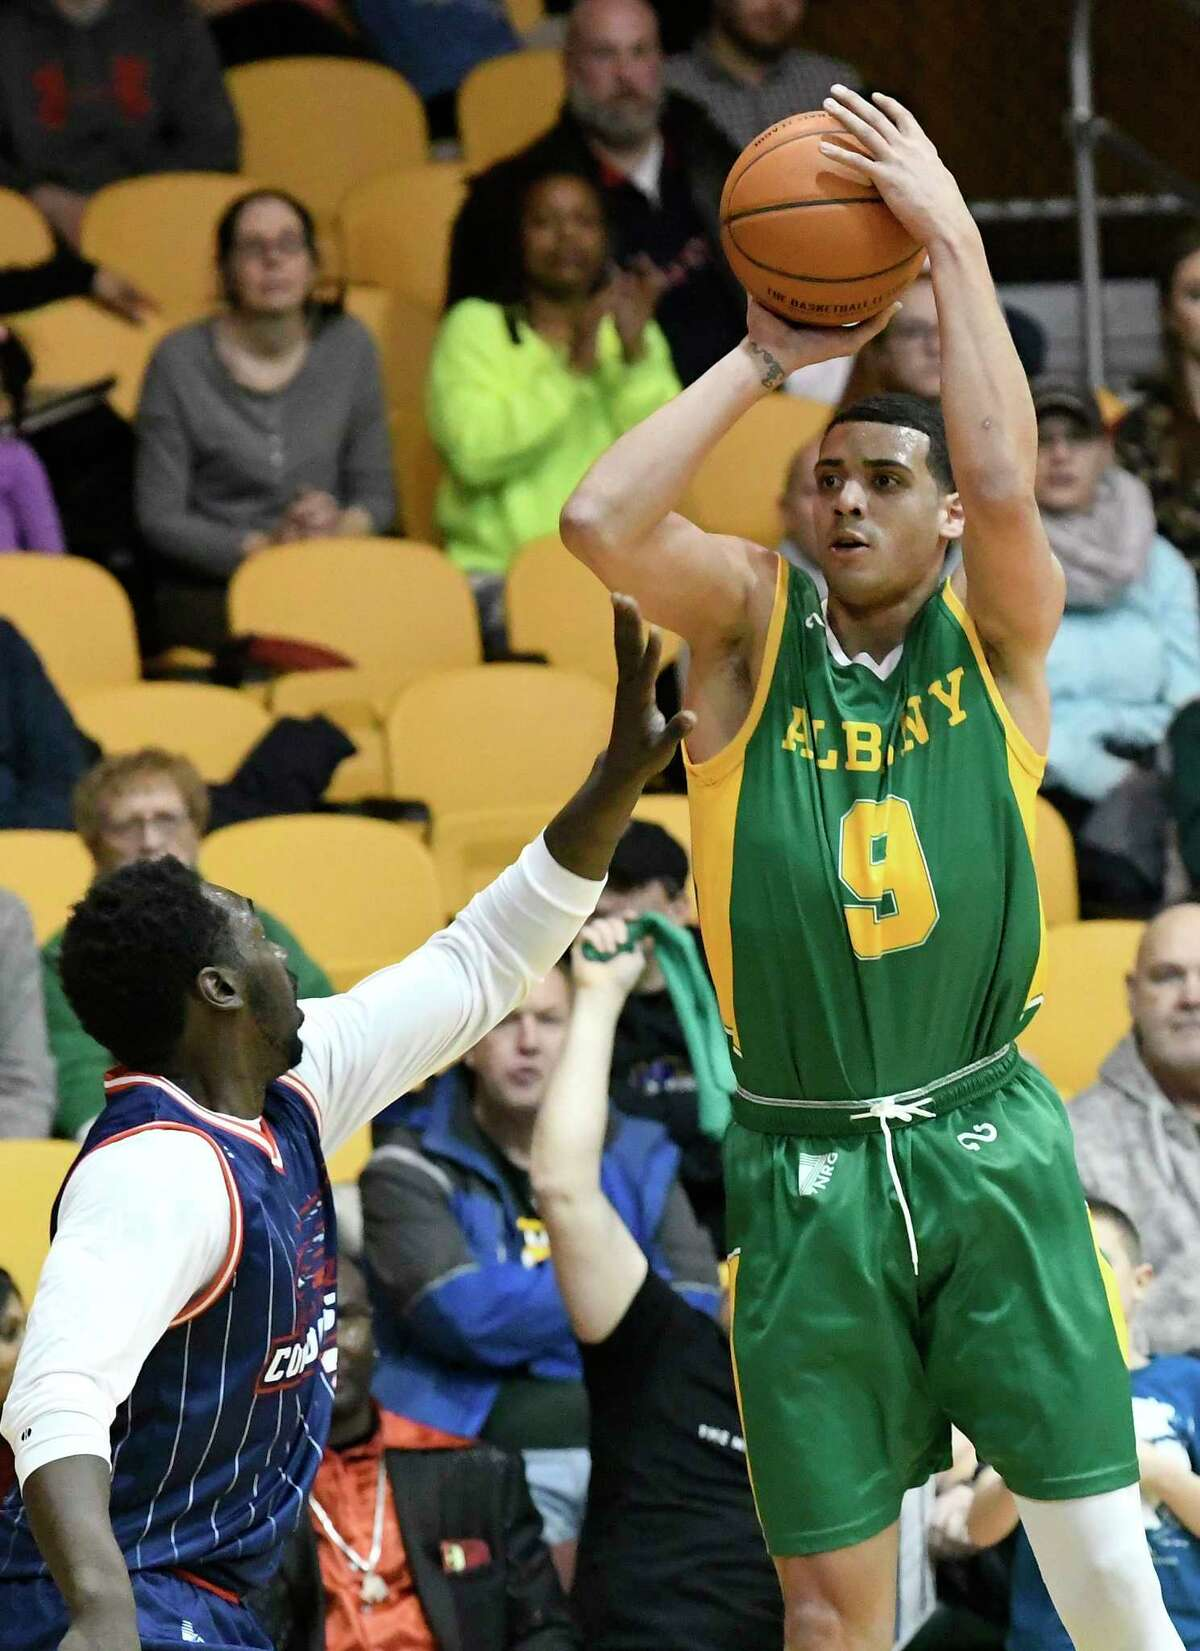 Albany Patroons?• Kwinten Willims (9) scores against the Columbus Condors during the first half of a The Basketball League basketball game Saturday, Feb.15, 2020, in Albany, N.Y.